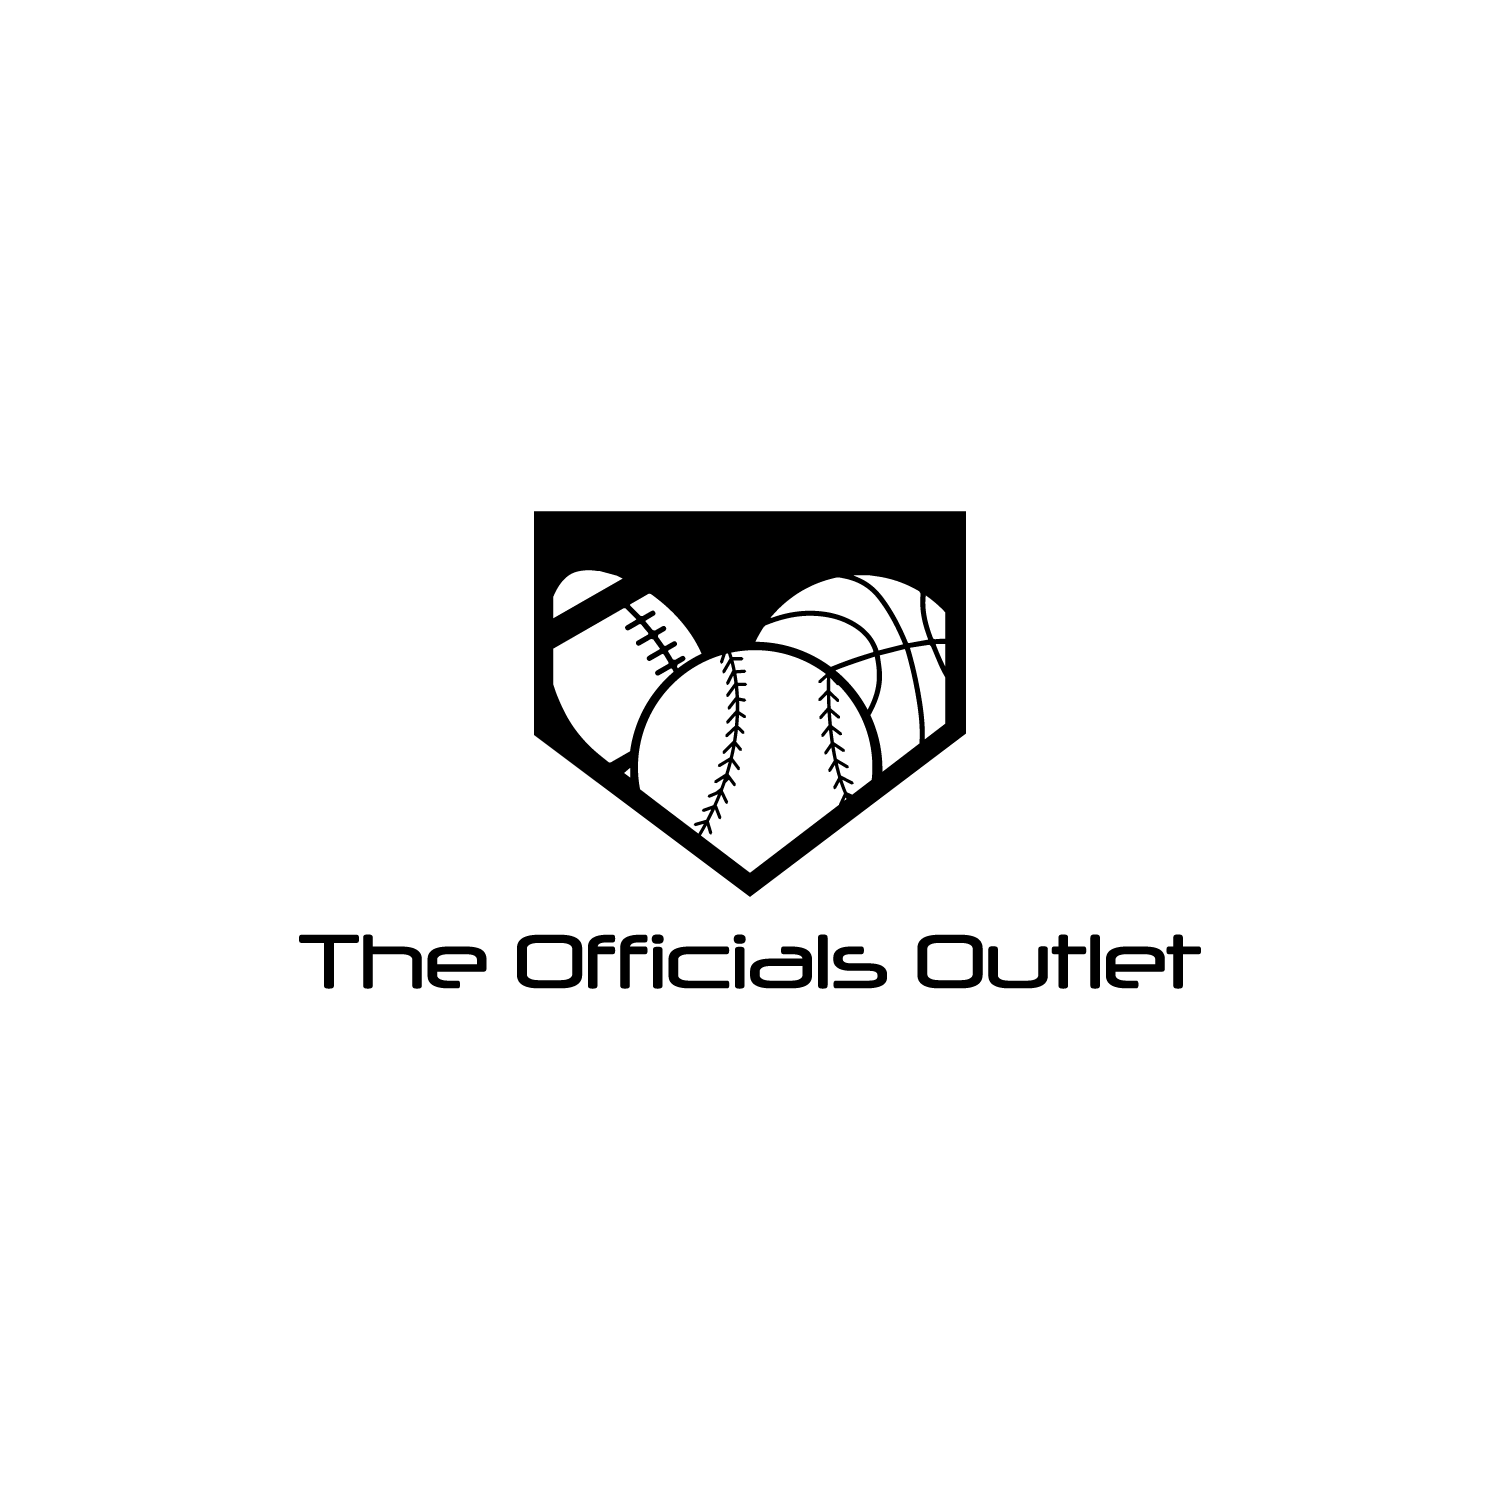 1669cc3a082a6 The Official s Outlet The Official s Outlet